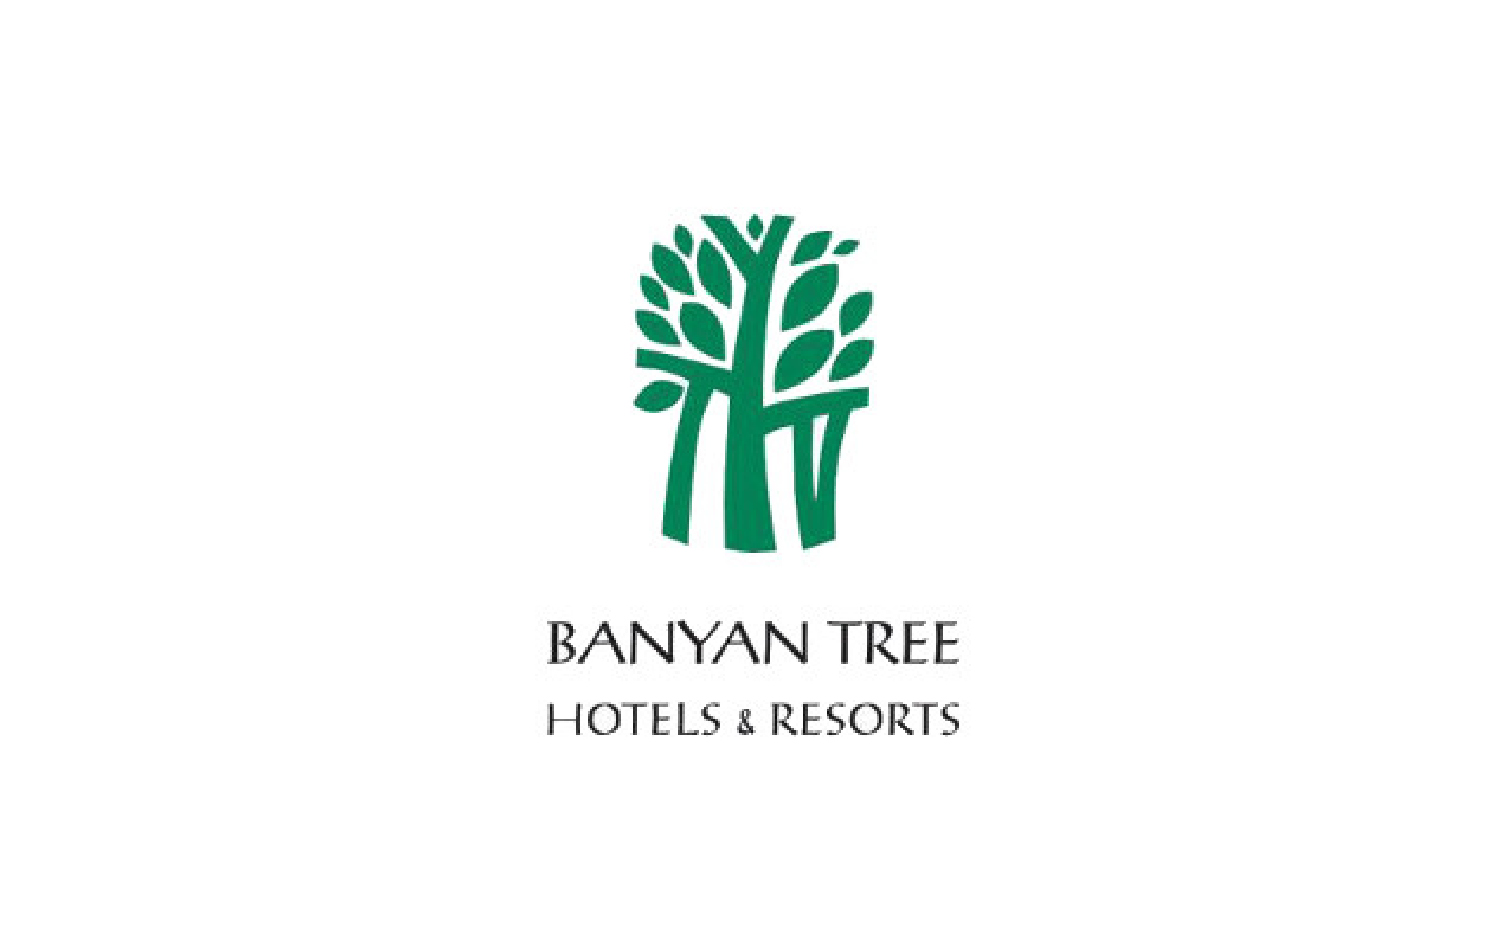 Banyan Tree Hotels & Resorts